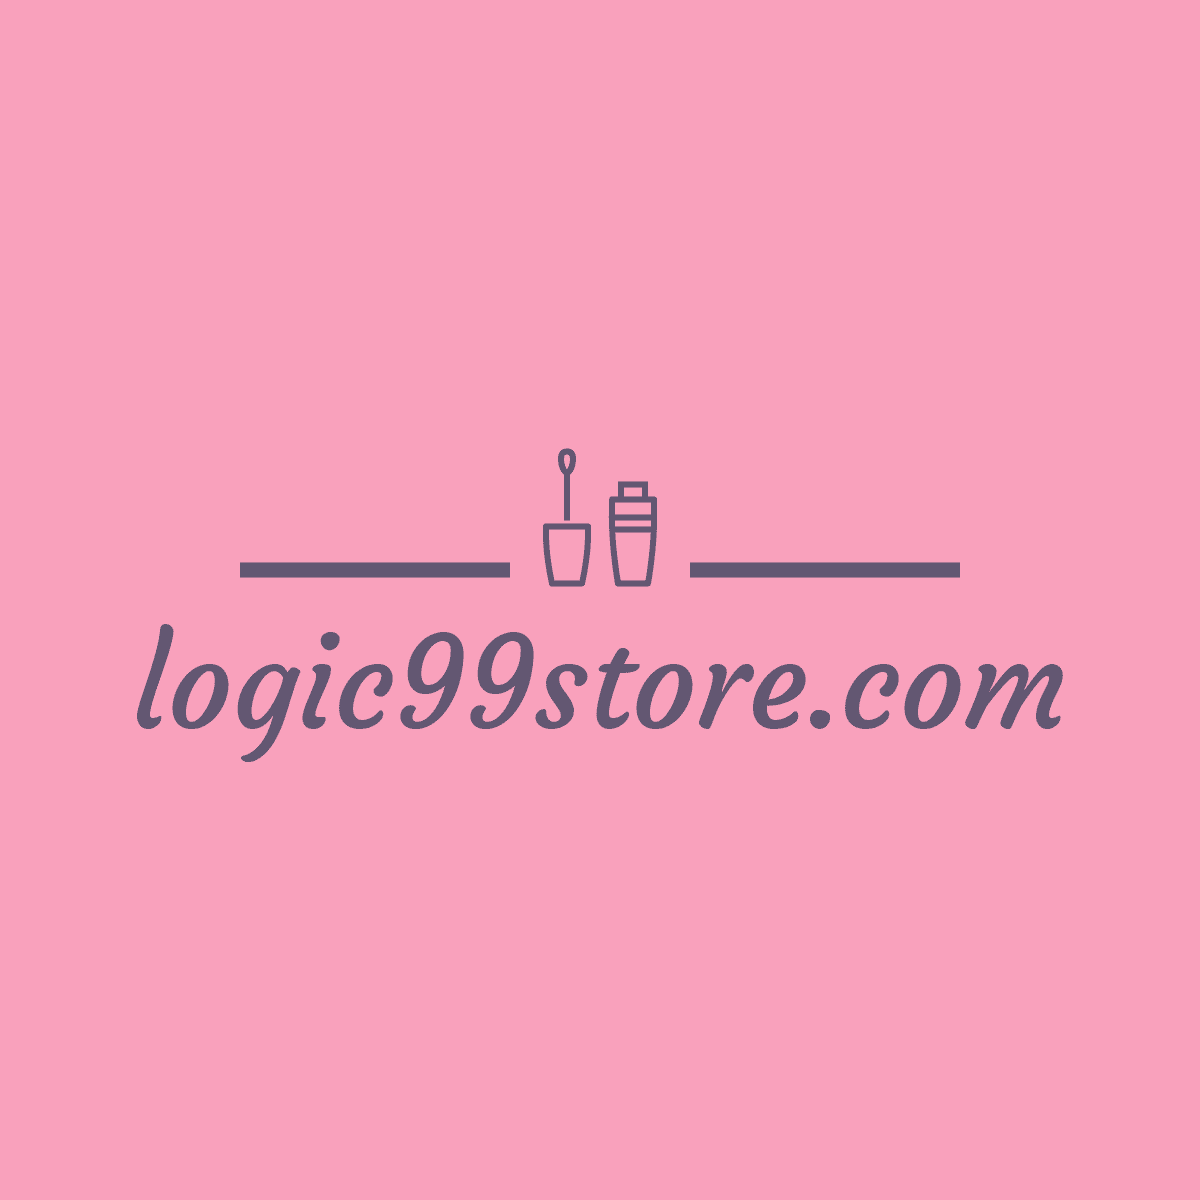 logic99store.com Shirts | Shop Funny T Shirts | Make Your Own Custom T Shirts